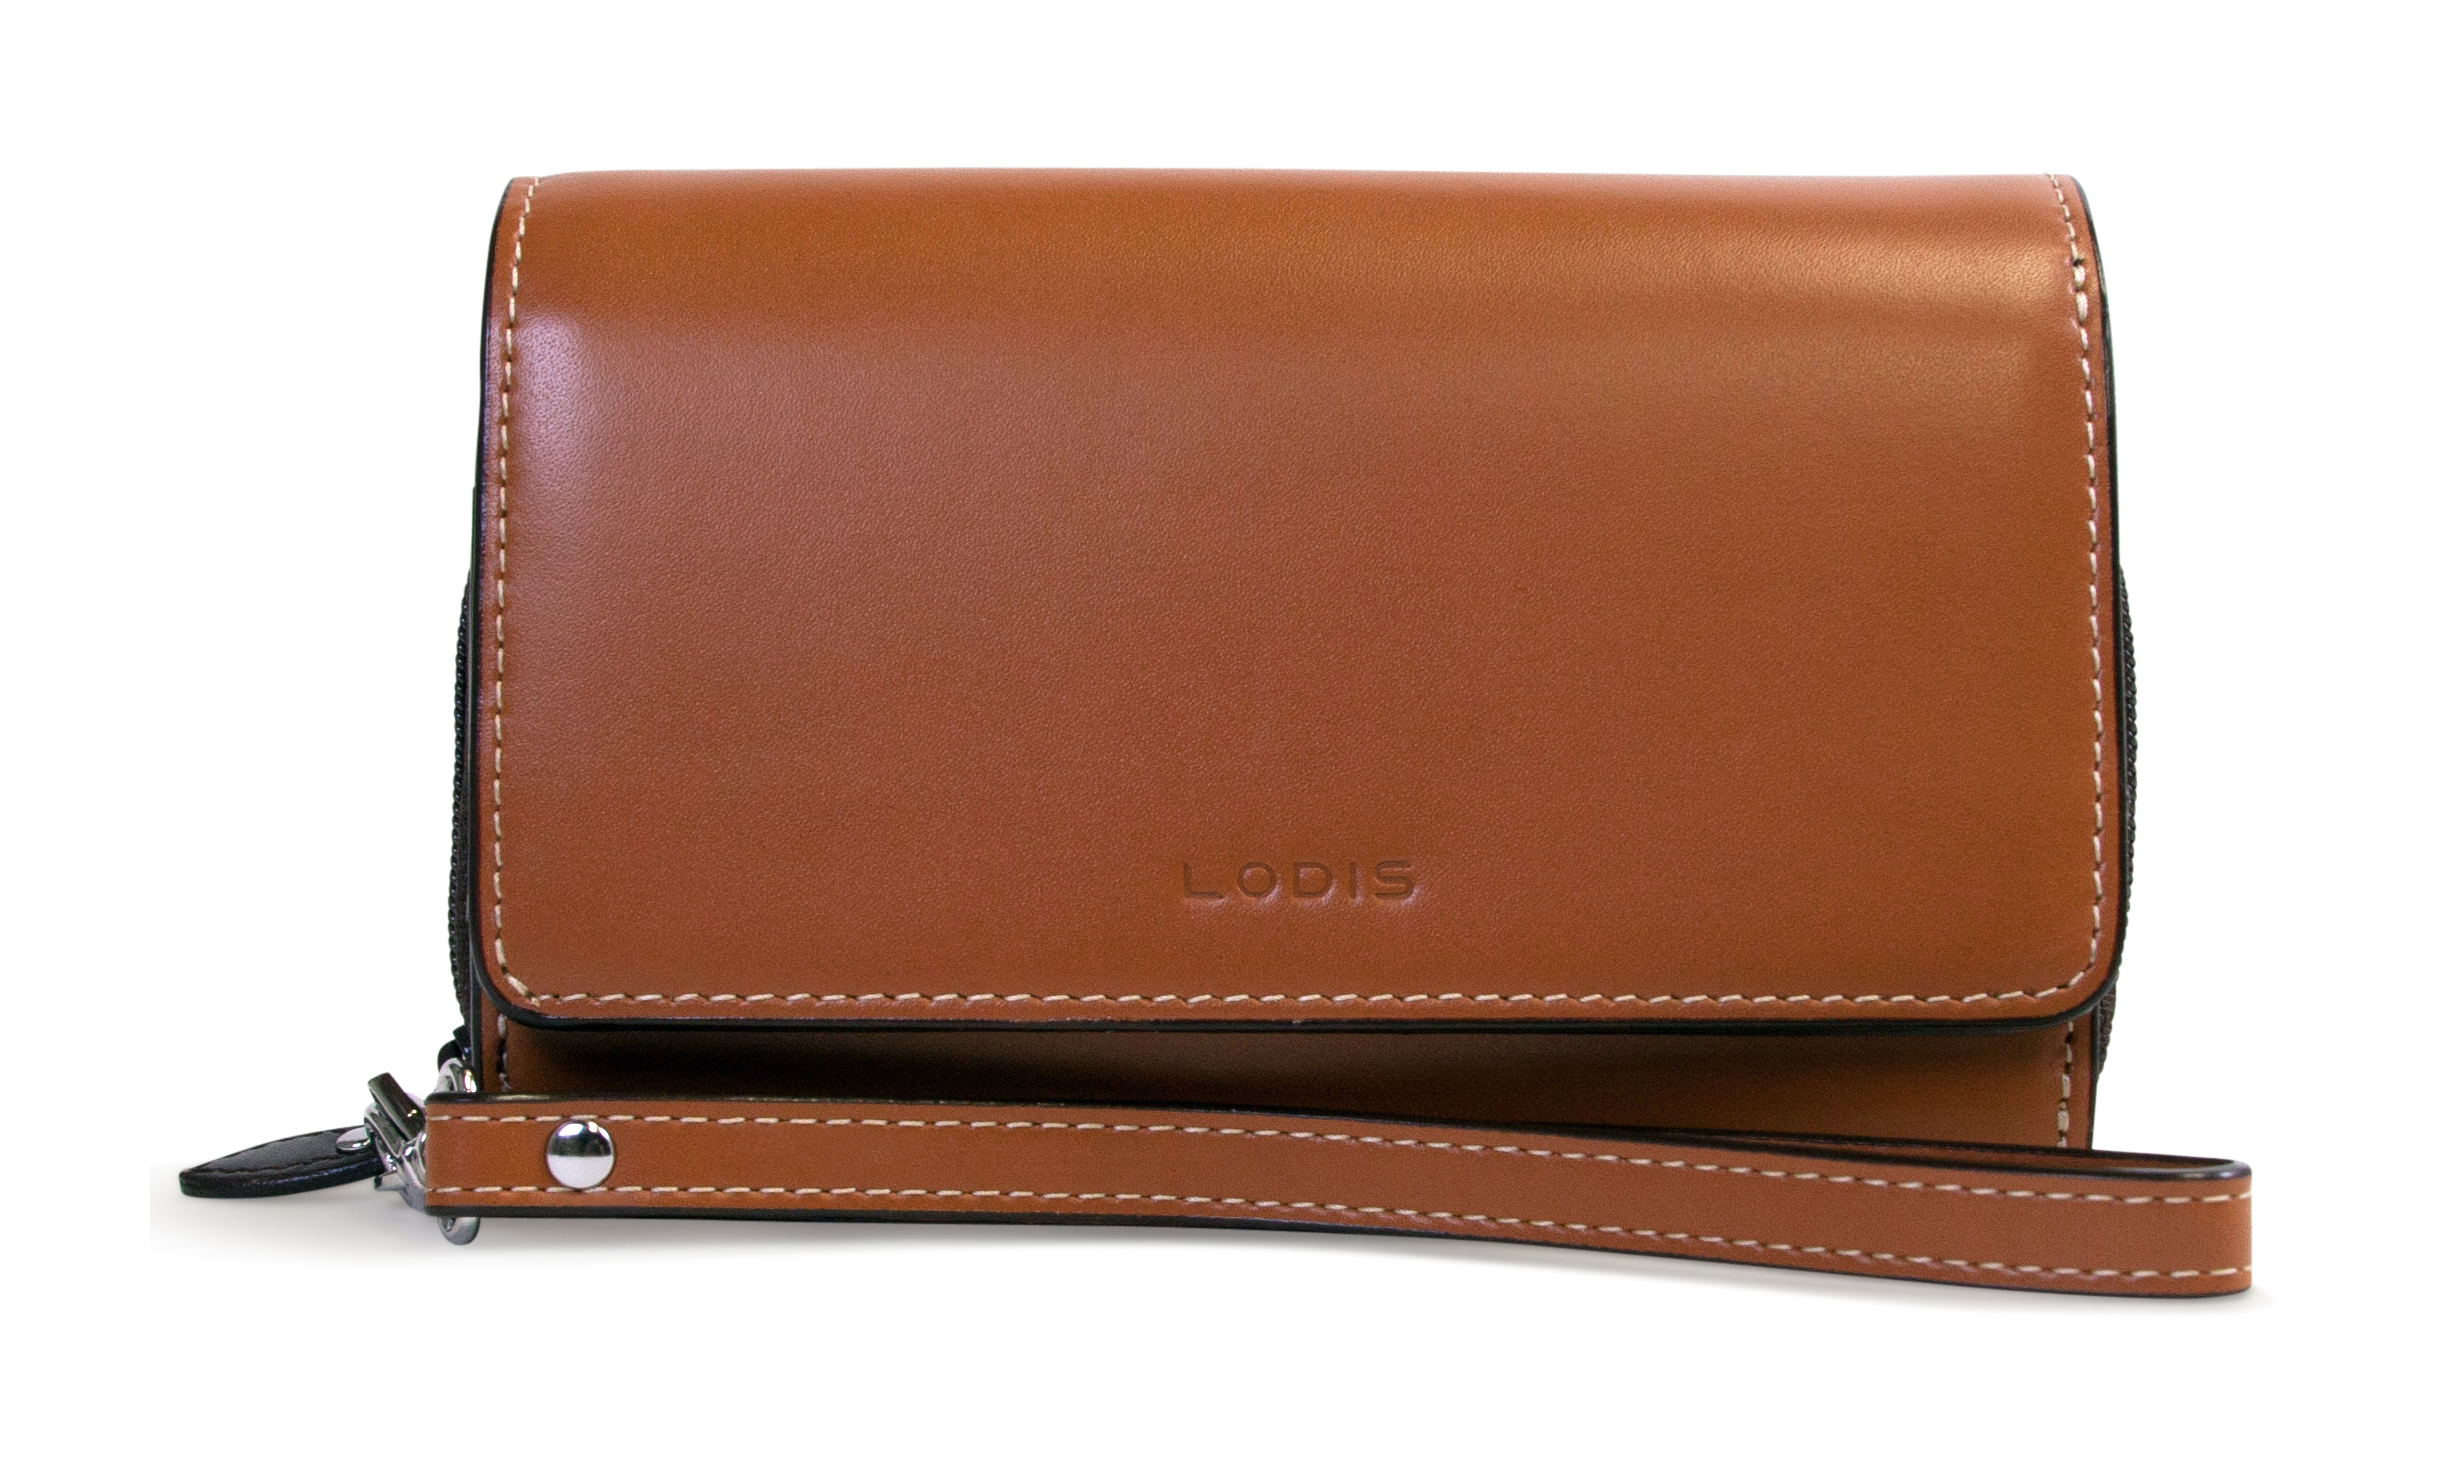 Lodis AUDREY BEA PHONE WALLET Toffee